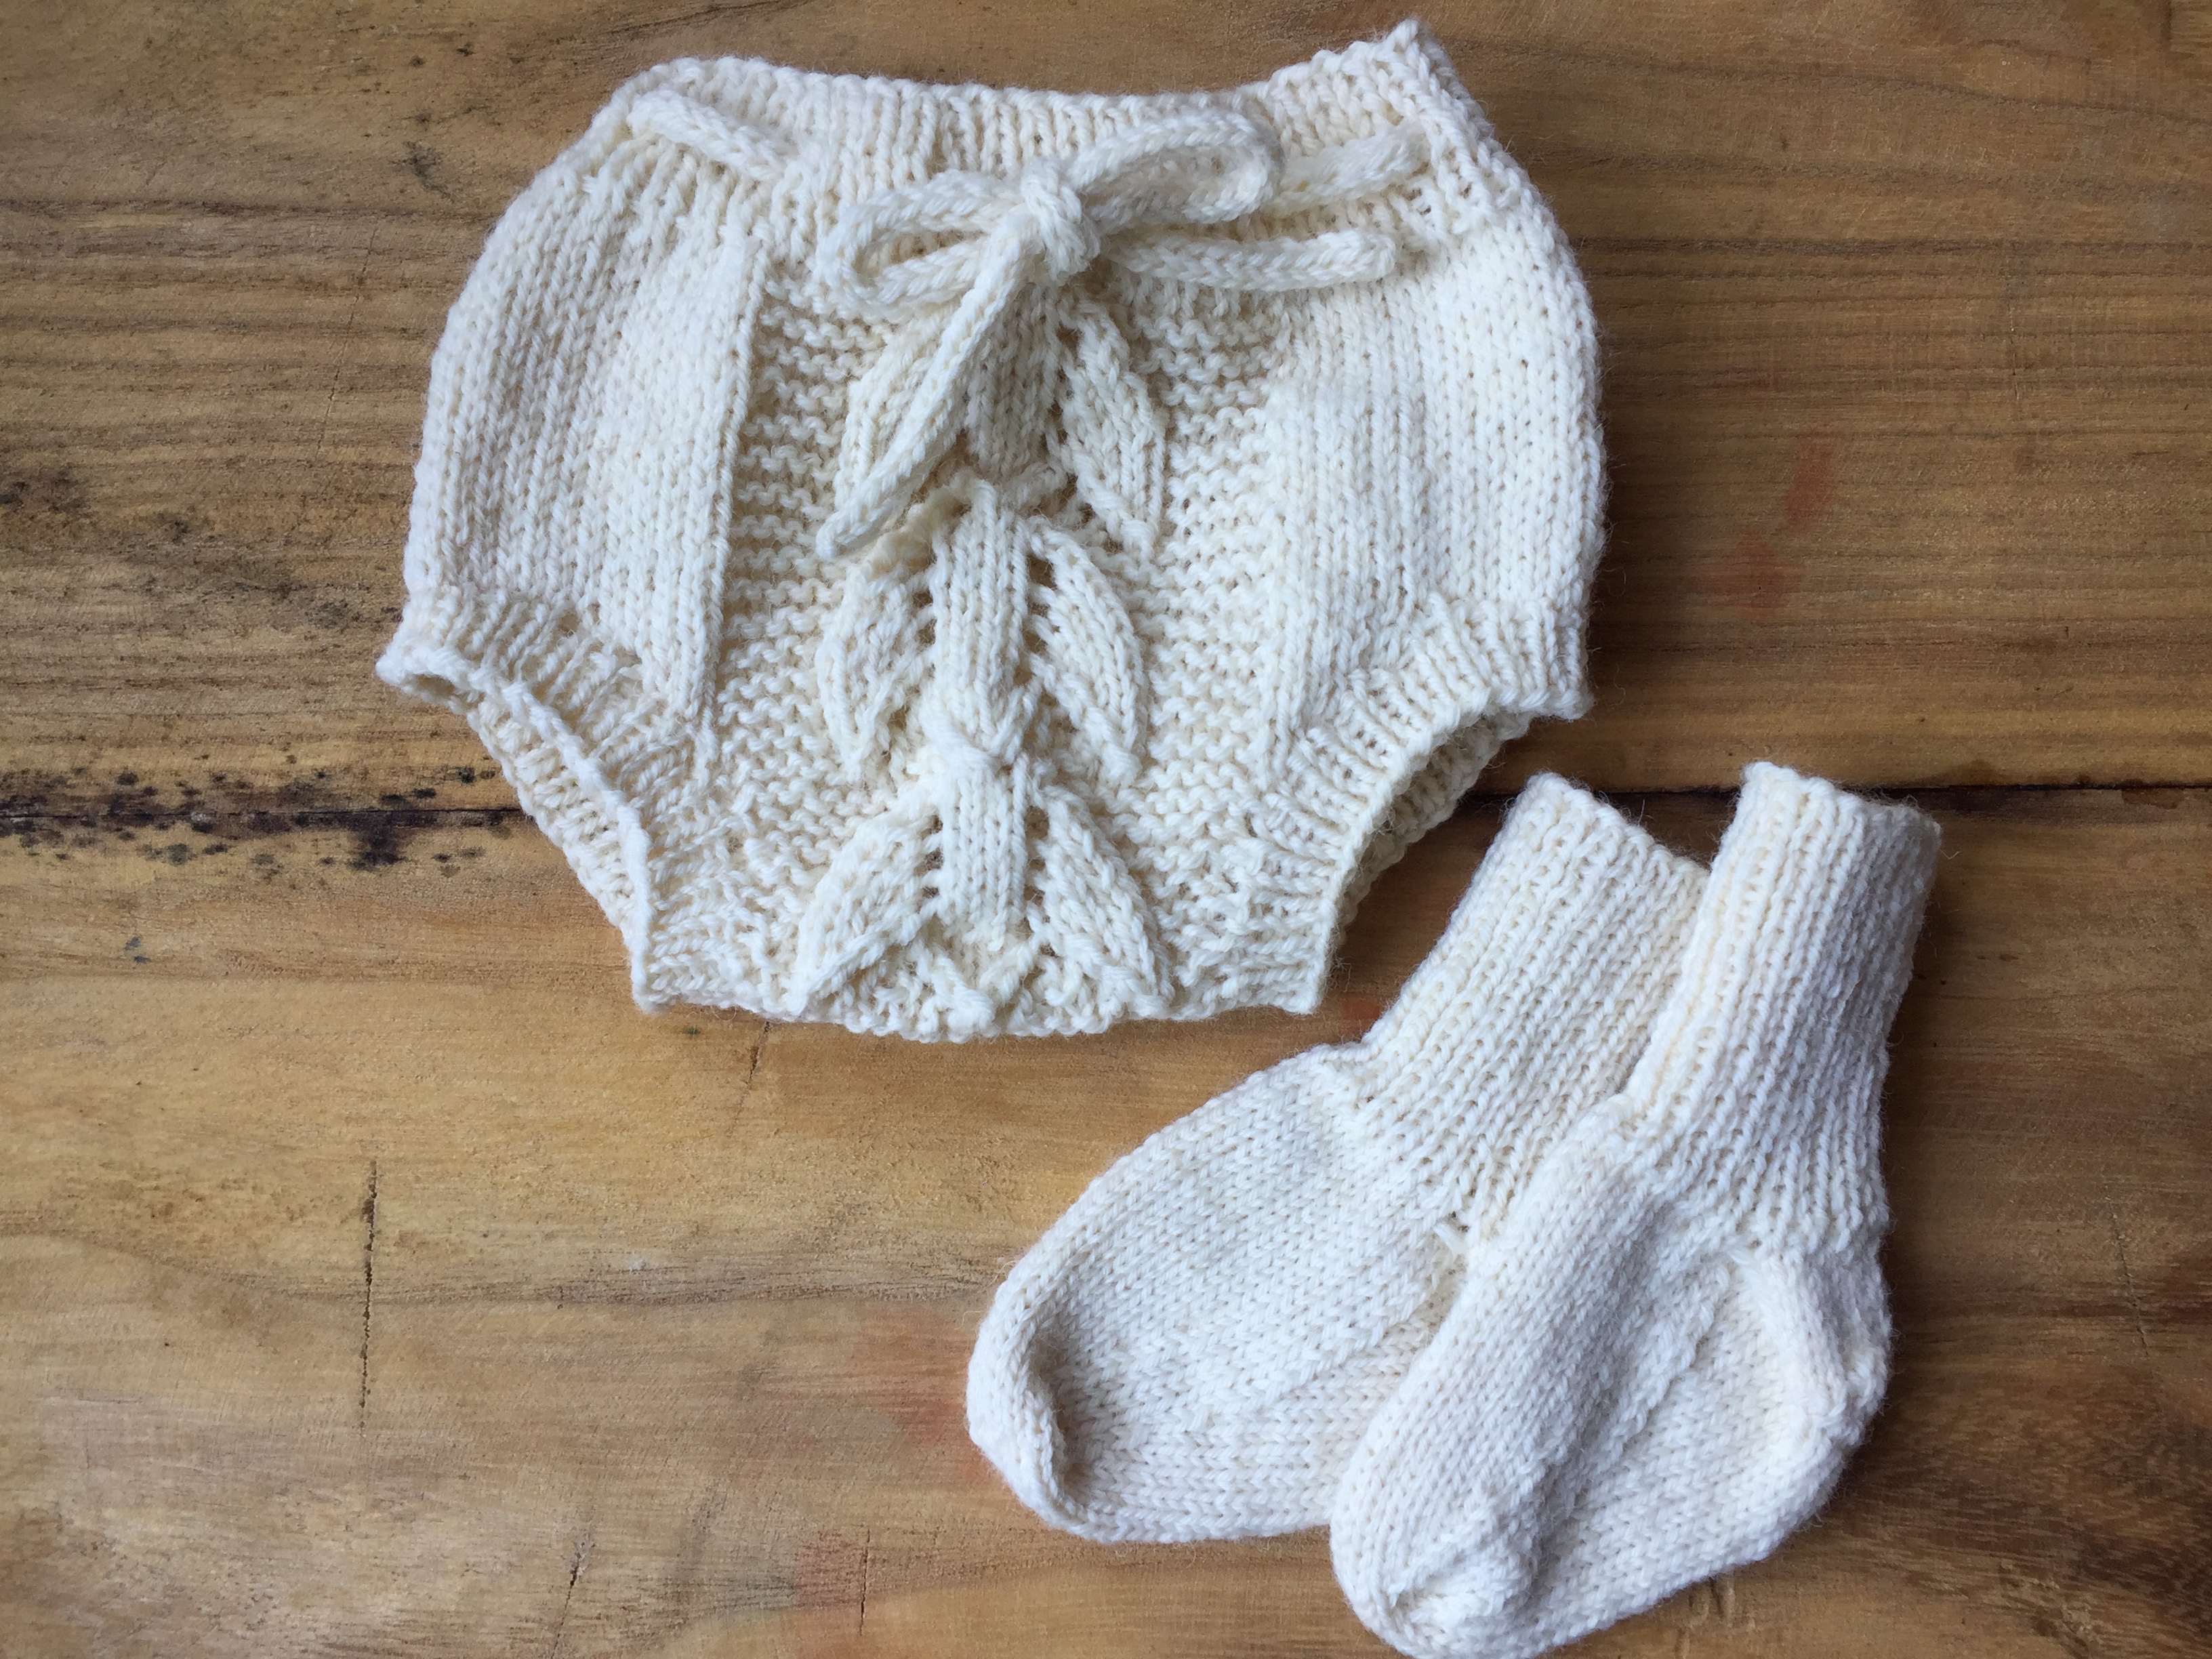 Heirloom hand knit tulip baby bloomers and matching baby socks